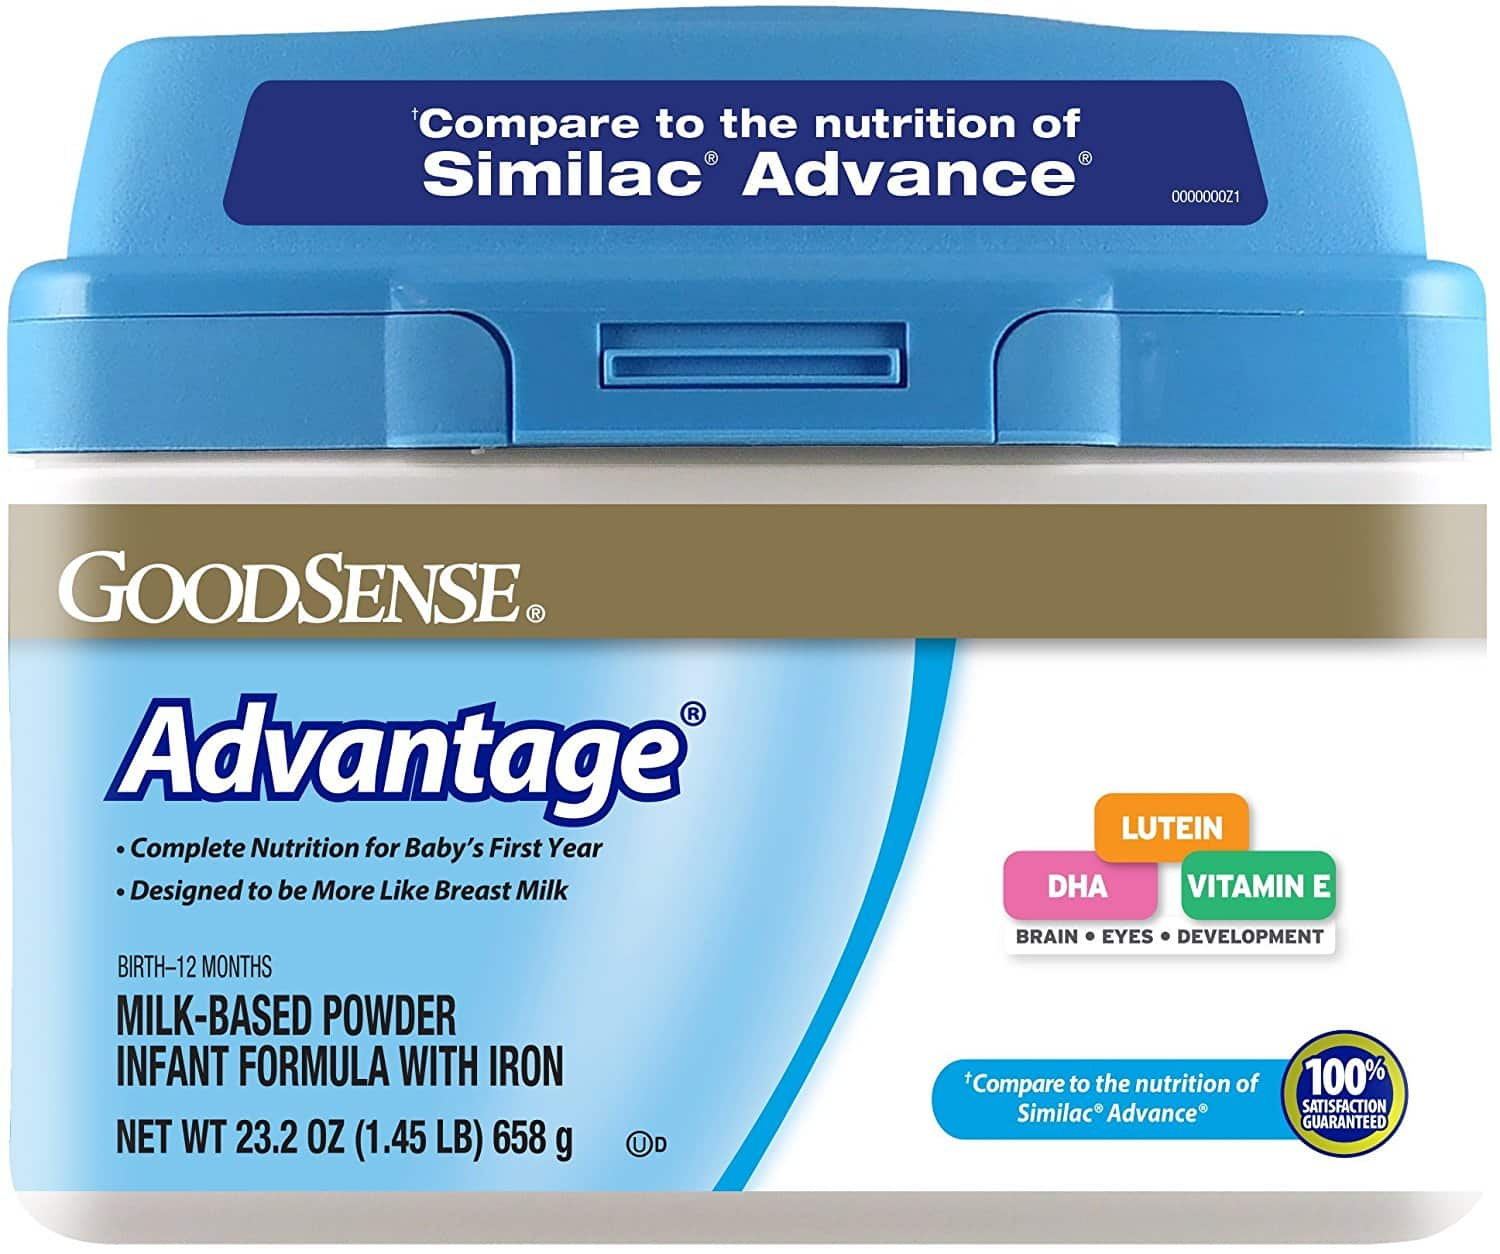 Prime Members: GoodSense Advantage Milk-Based Powder Infant Formula with Iron, 23.2 Ounce $3.45 or less S&S + FS